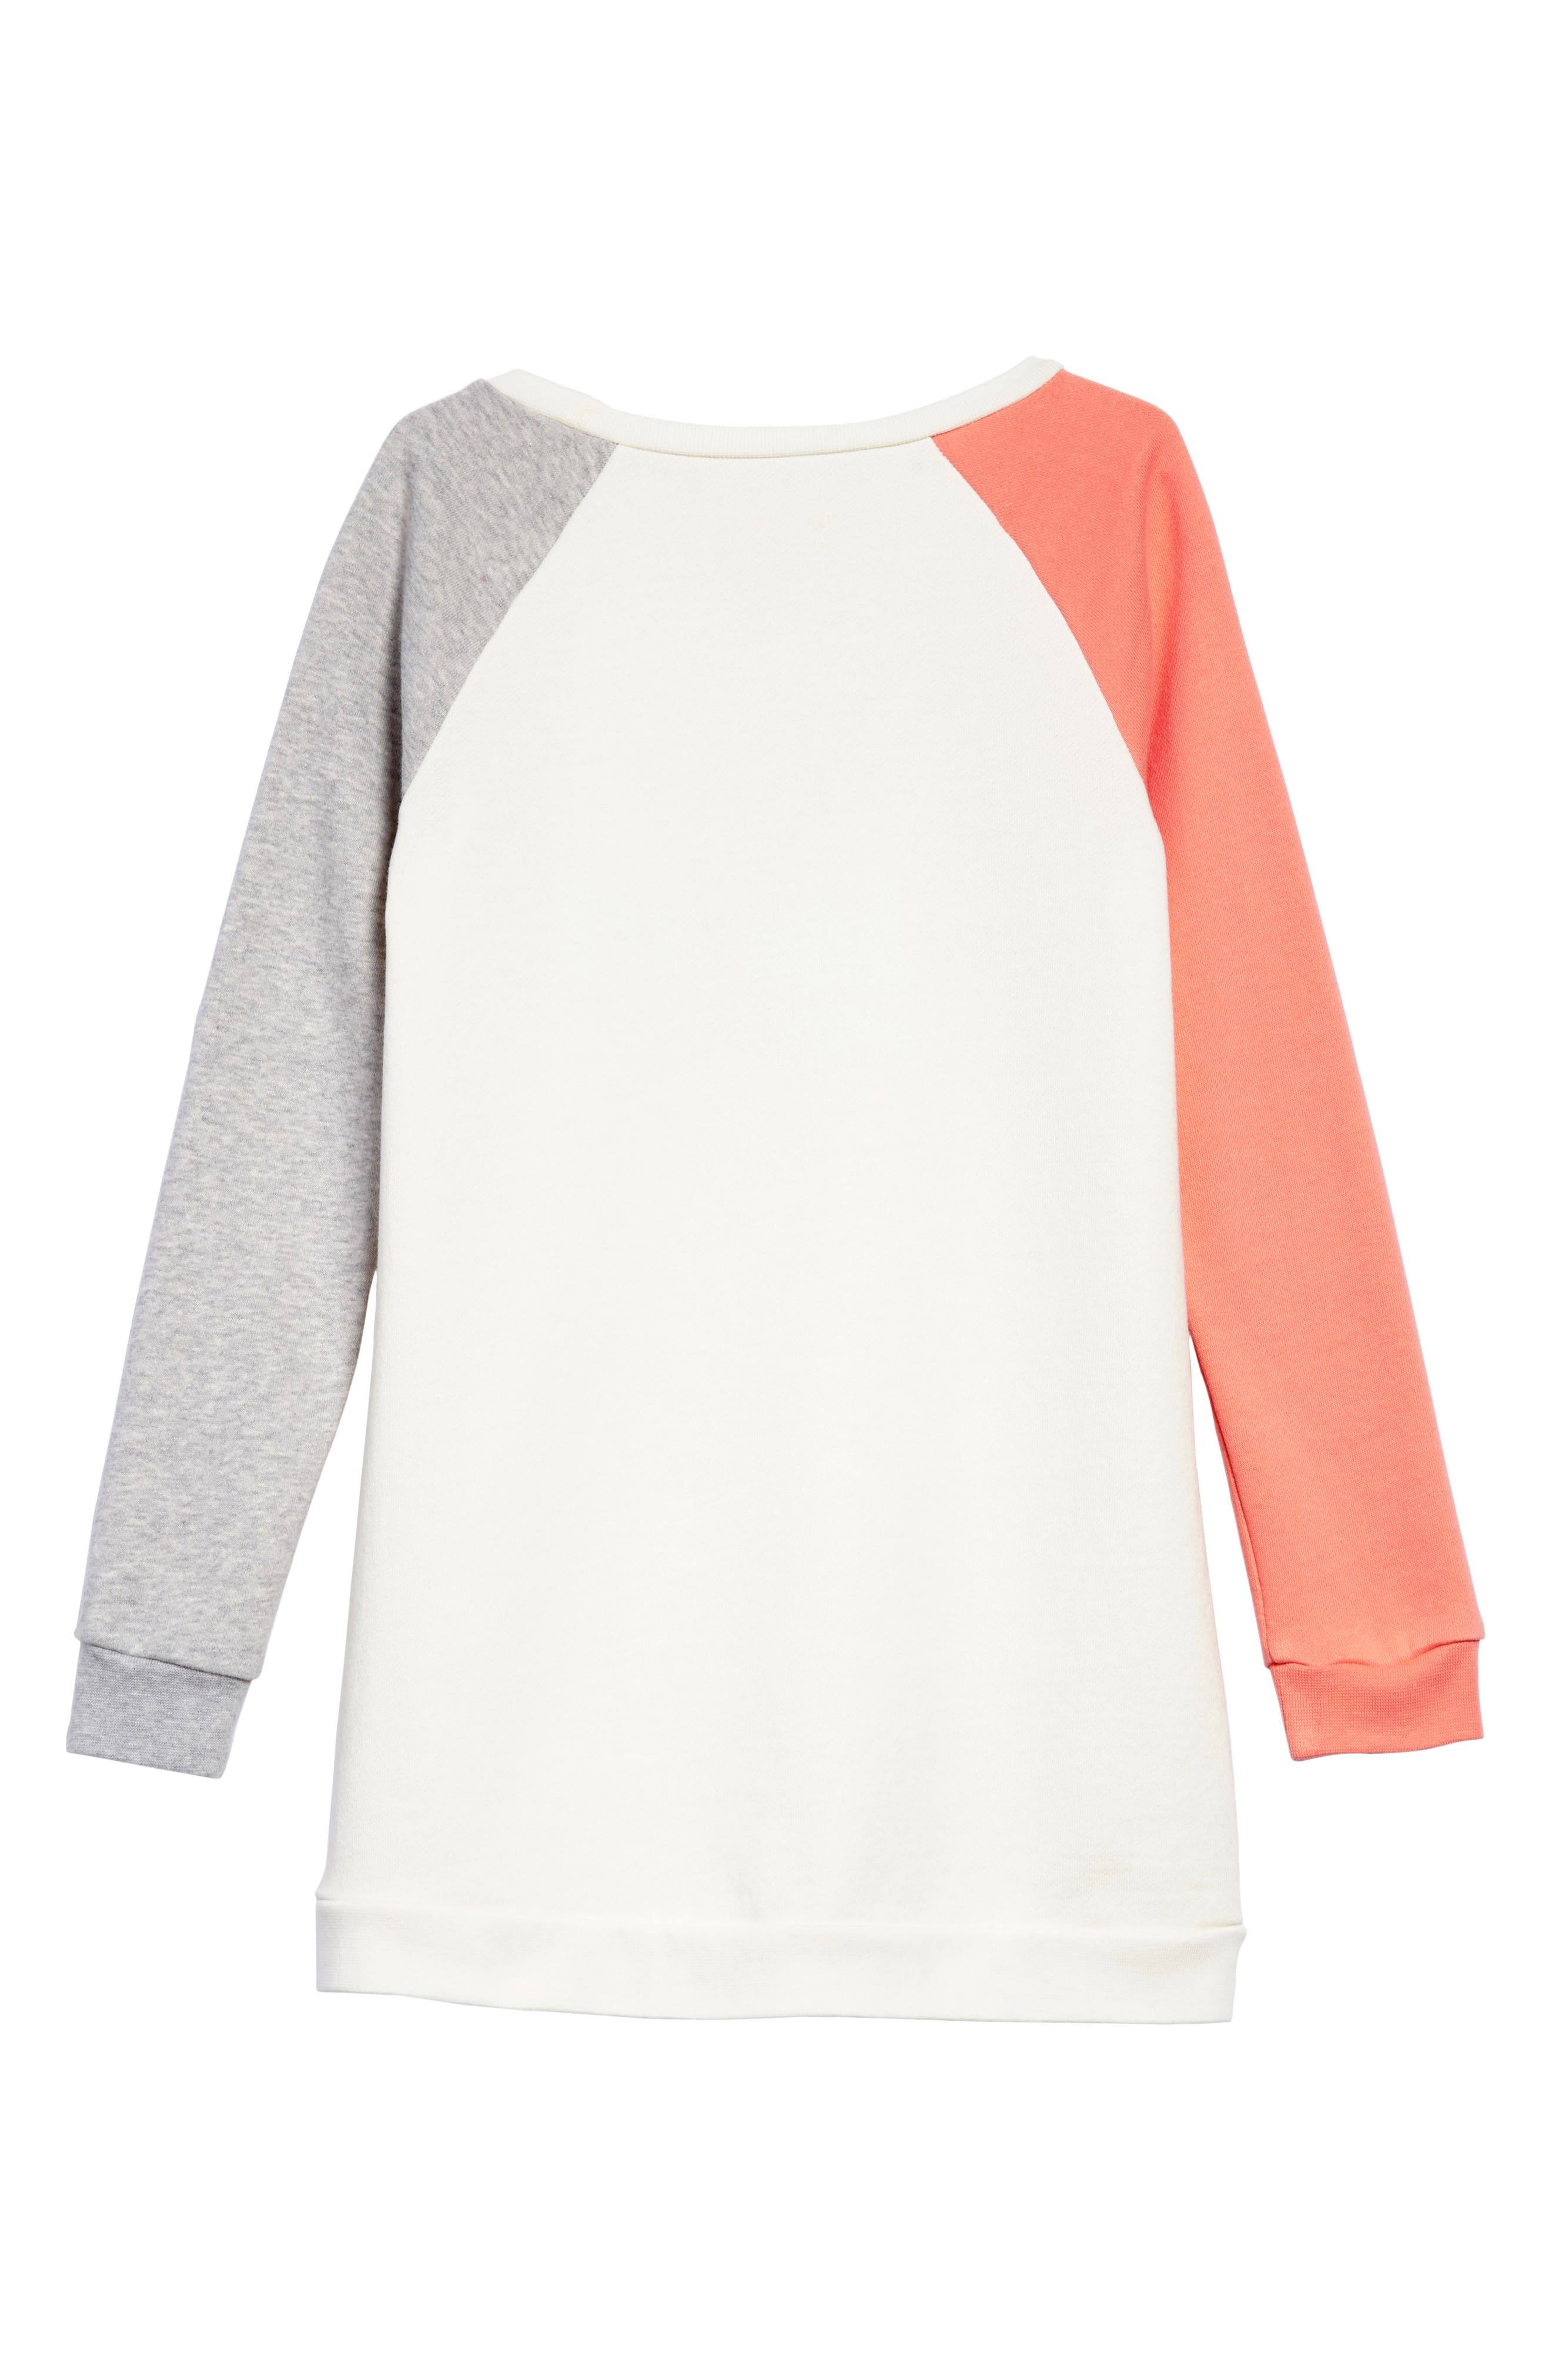 Sweatshirt Dress,                             Alternate thumbnail 2, color,                             900